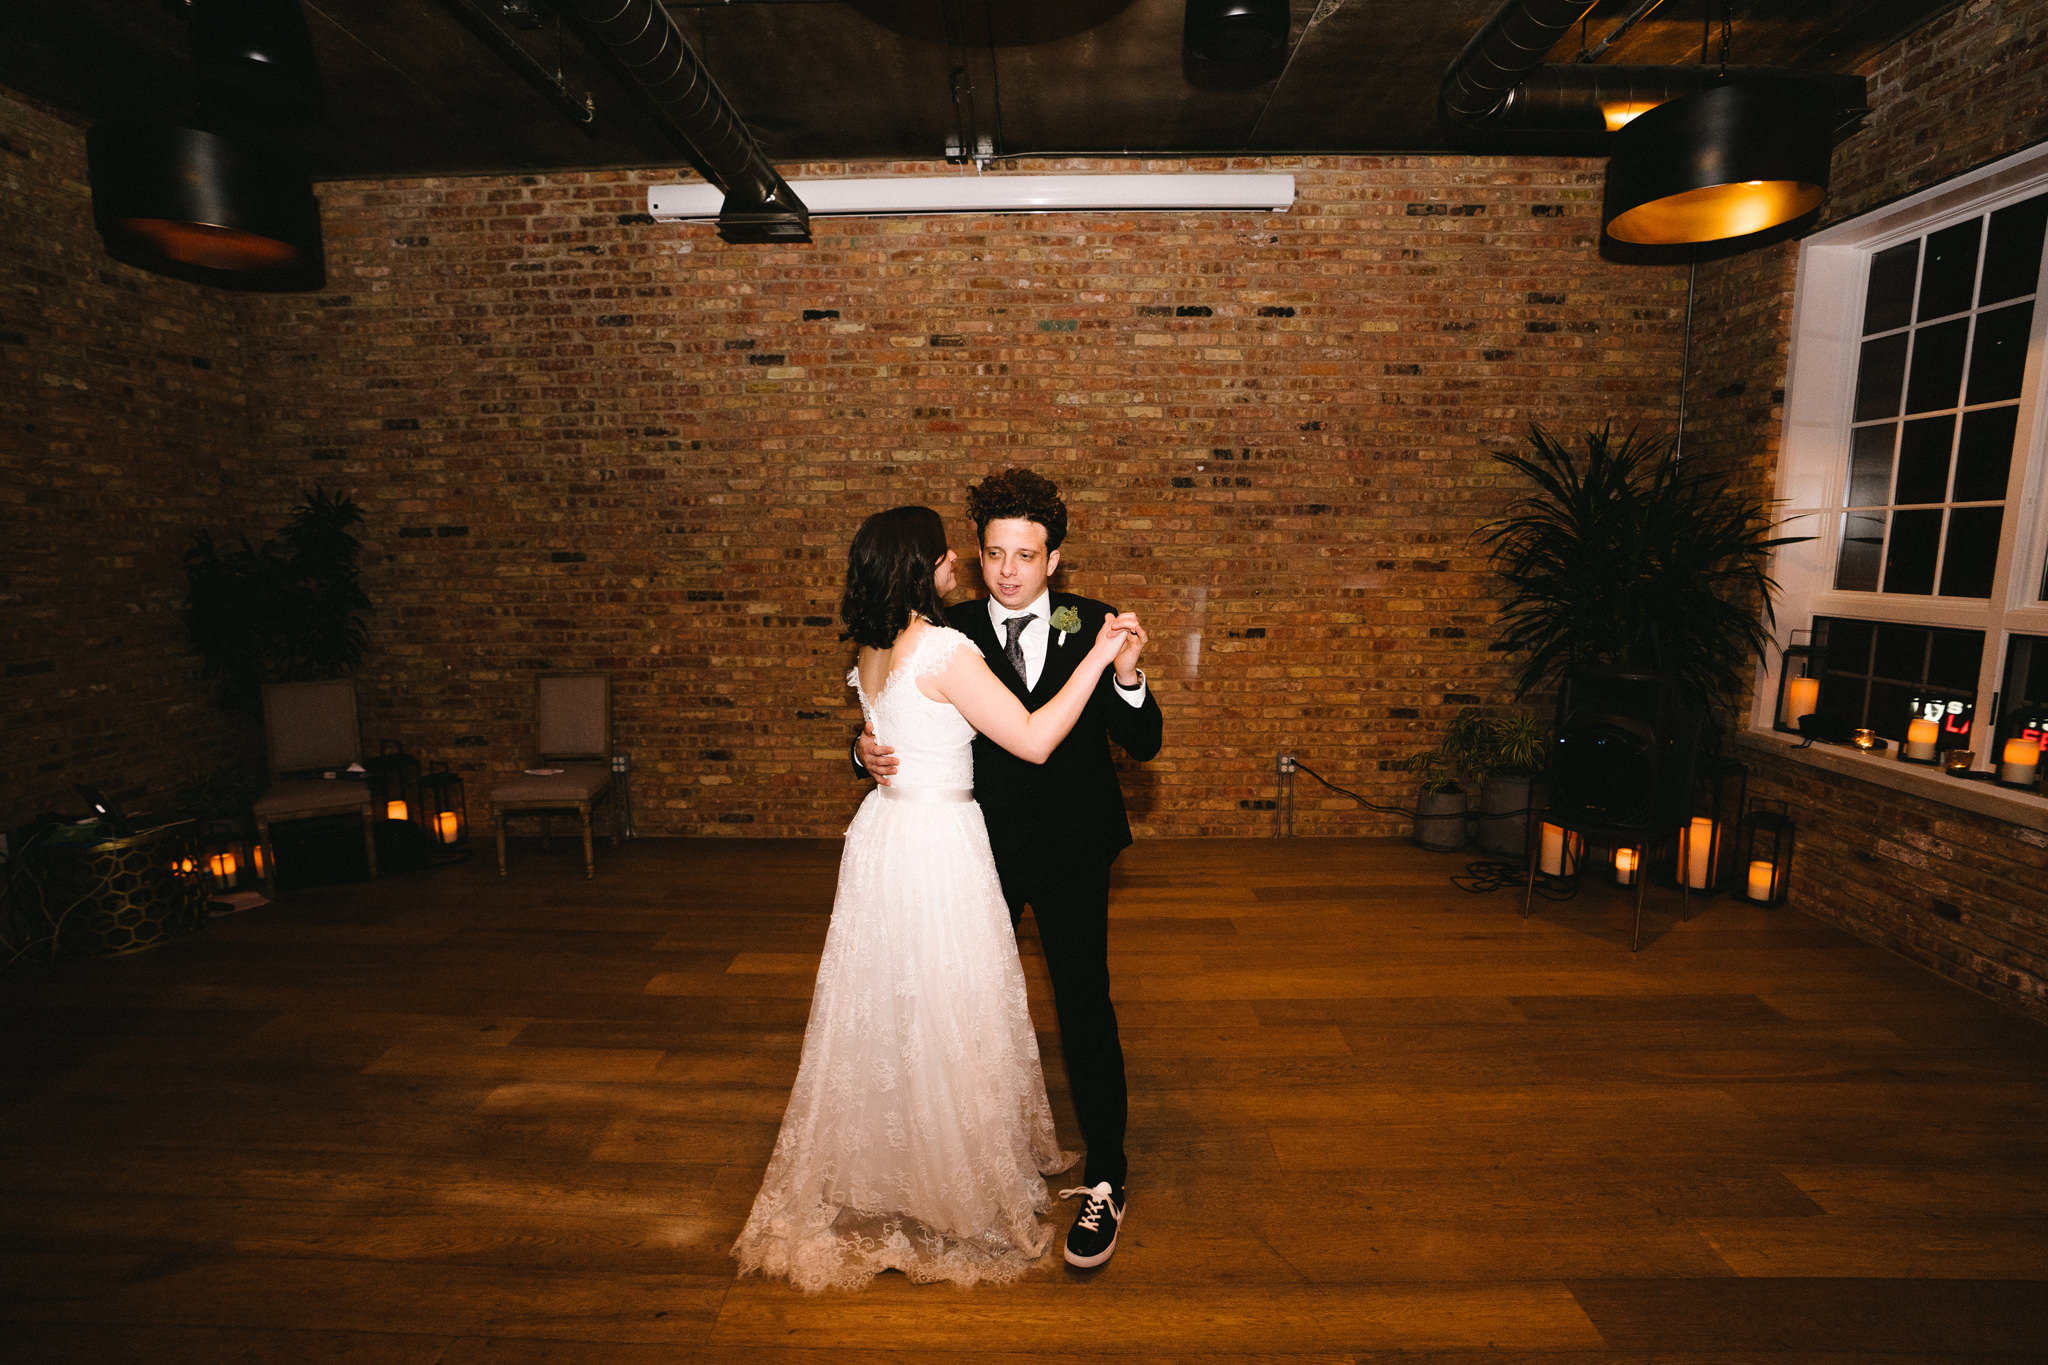 117-rempel-photography-chicago-wedding-inspiration-west-loop-fulton-market-caitlin-max-loft-lucia-venue-lindsey-marino-city-bbq-dana-hotel-and-spa.jpg